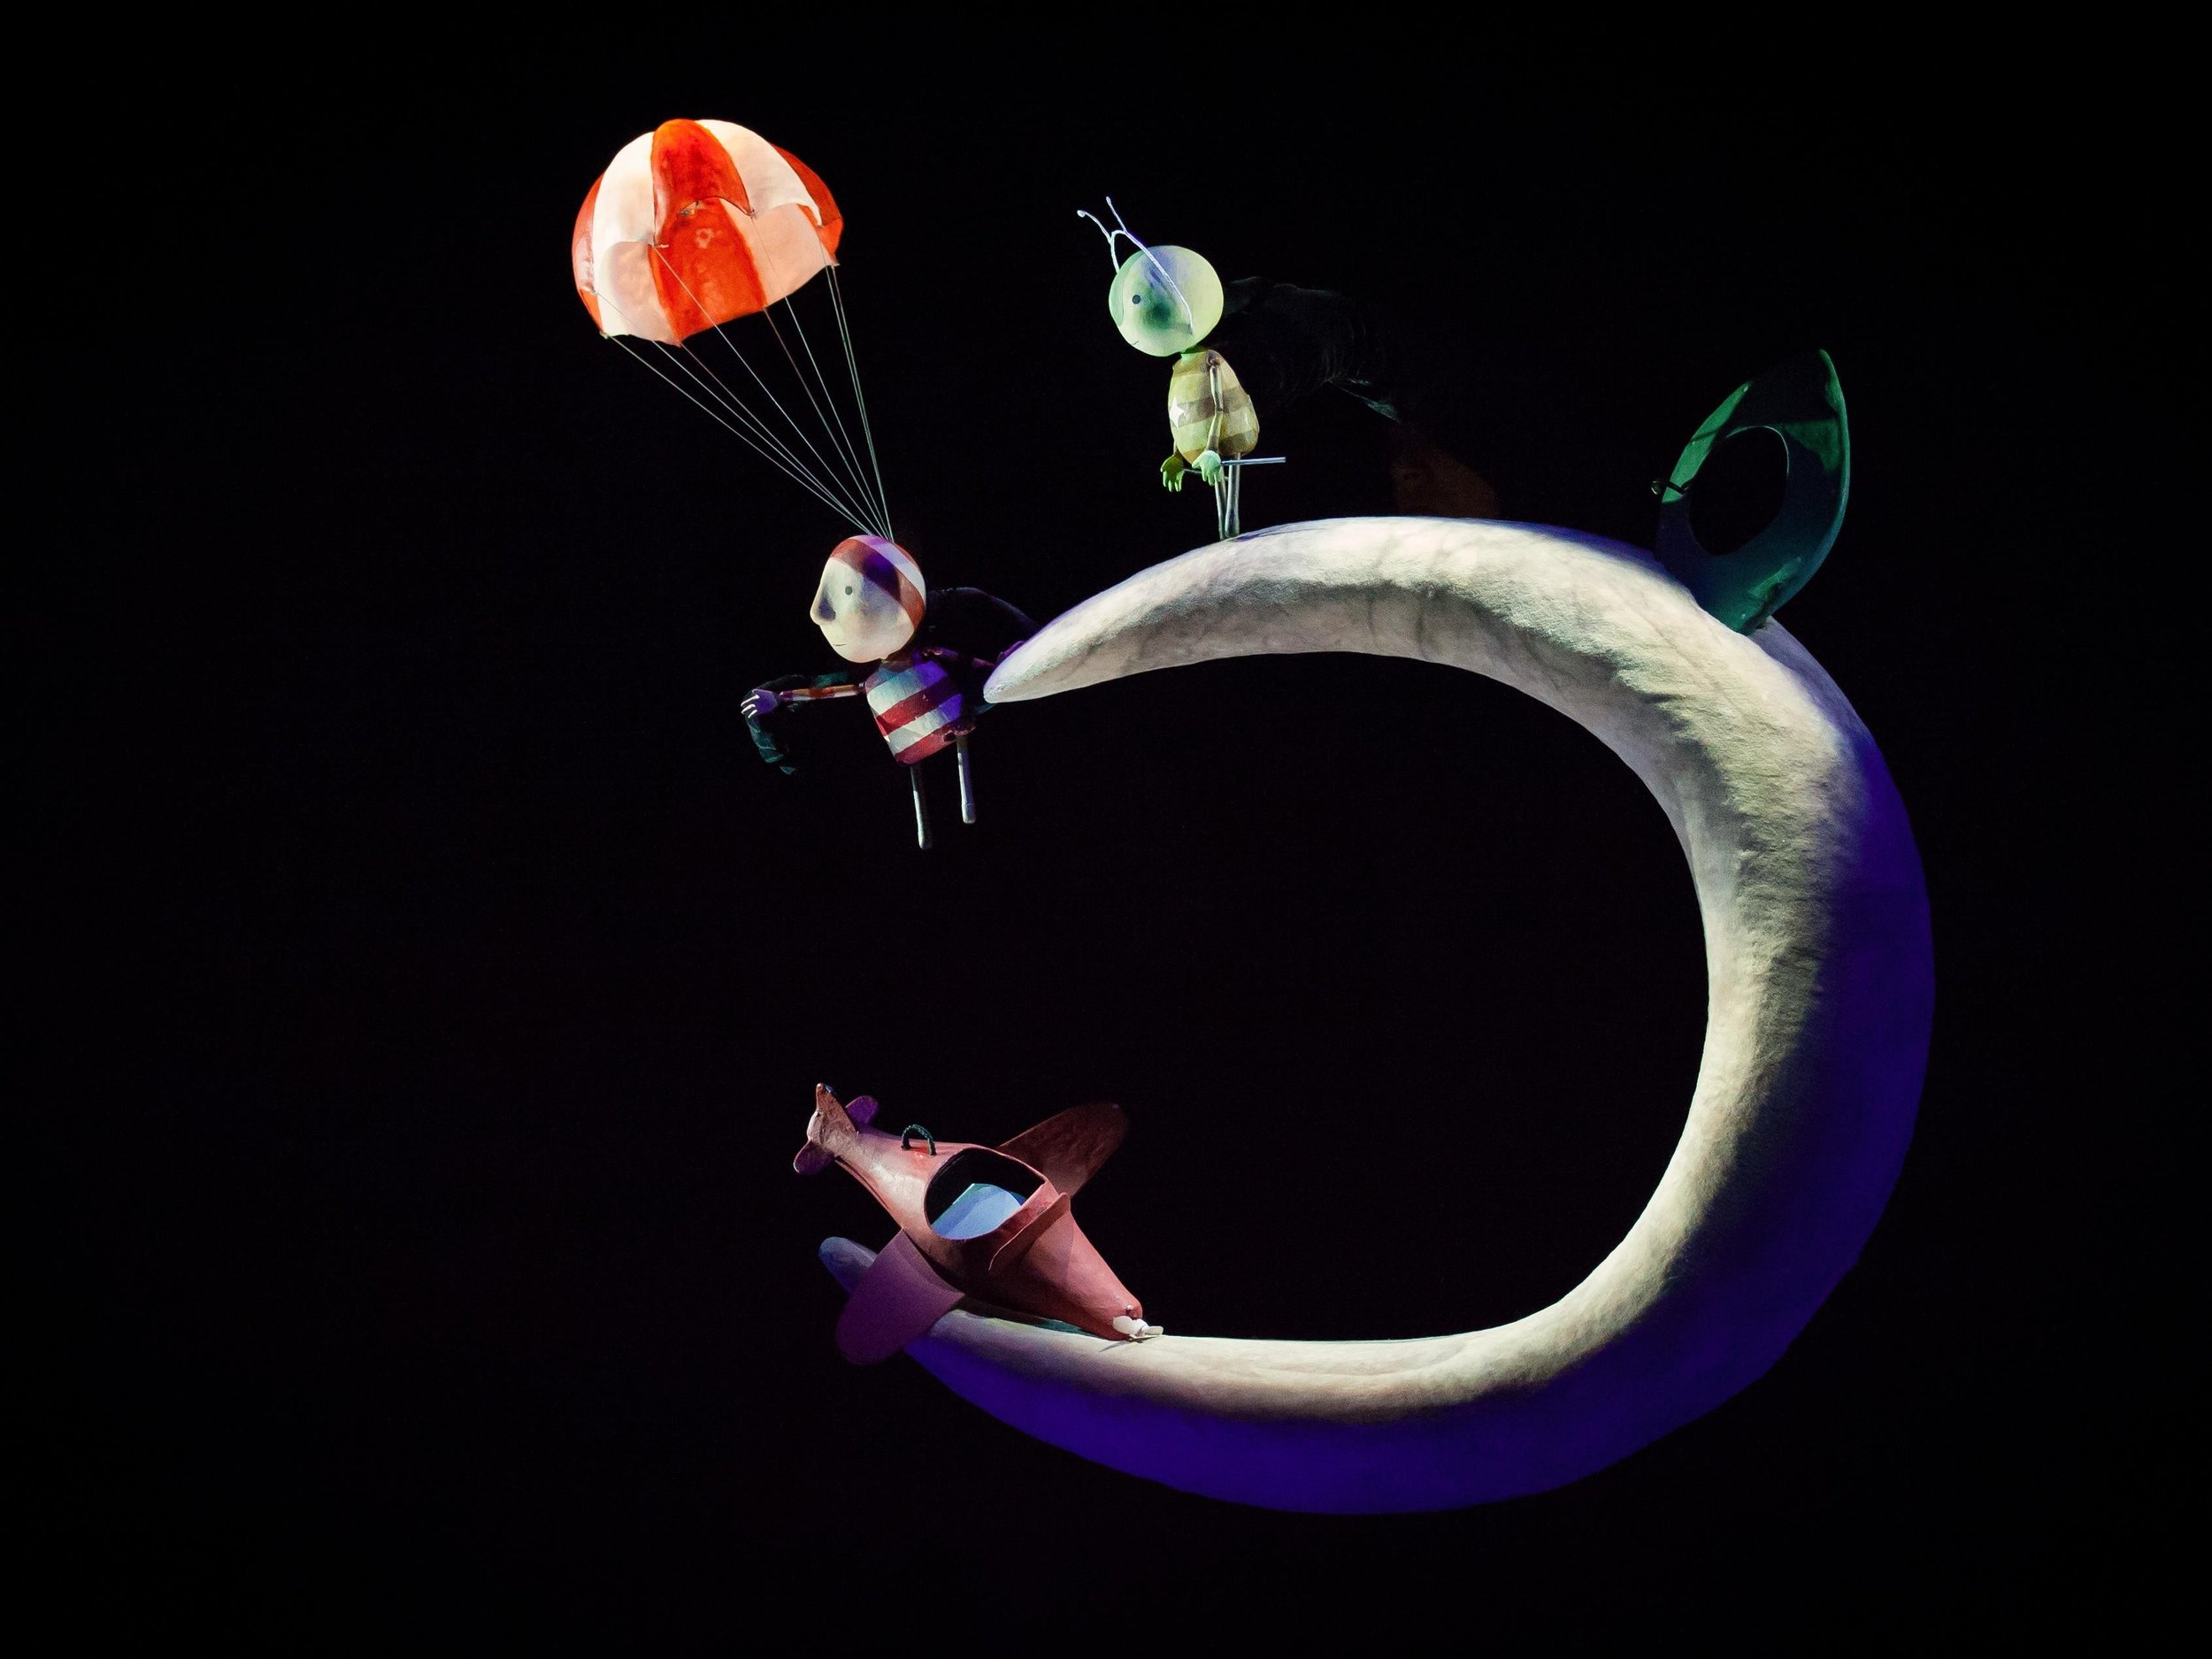 A non-verbal Story about friendship and bravery.   Co-produced with Teater Refleksion , Denmark.  When a boy discovers a single-propeller airplane in his closet, he does what any young adventurer would do: He flies into outer space! This wonderful story explores the boundless imagination of children. Through puppet animation and magical music, we tell the story of one boy's adventure into outer space and the quest he must undertake to help his new friend.  For audiences aged 3 +